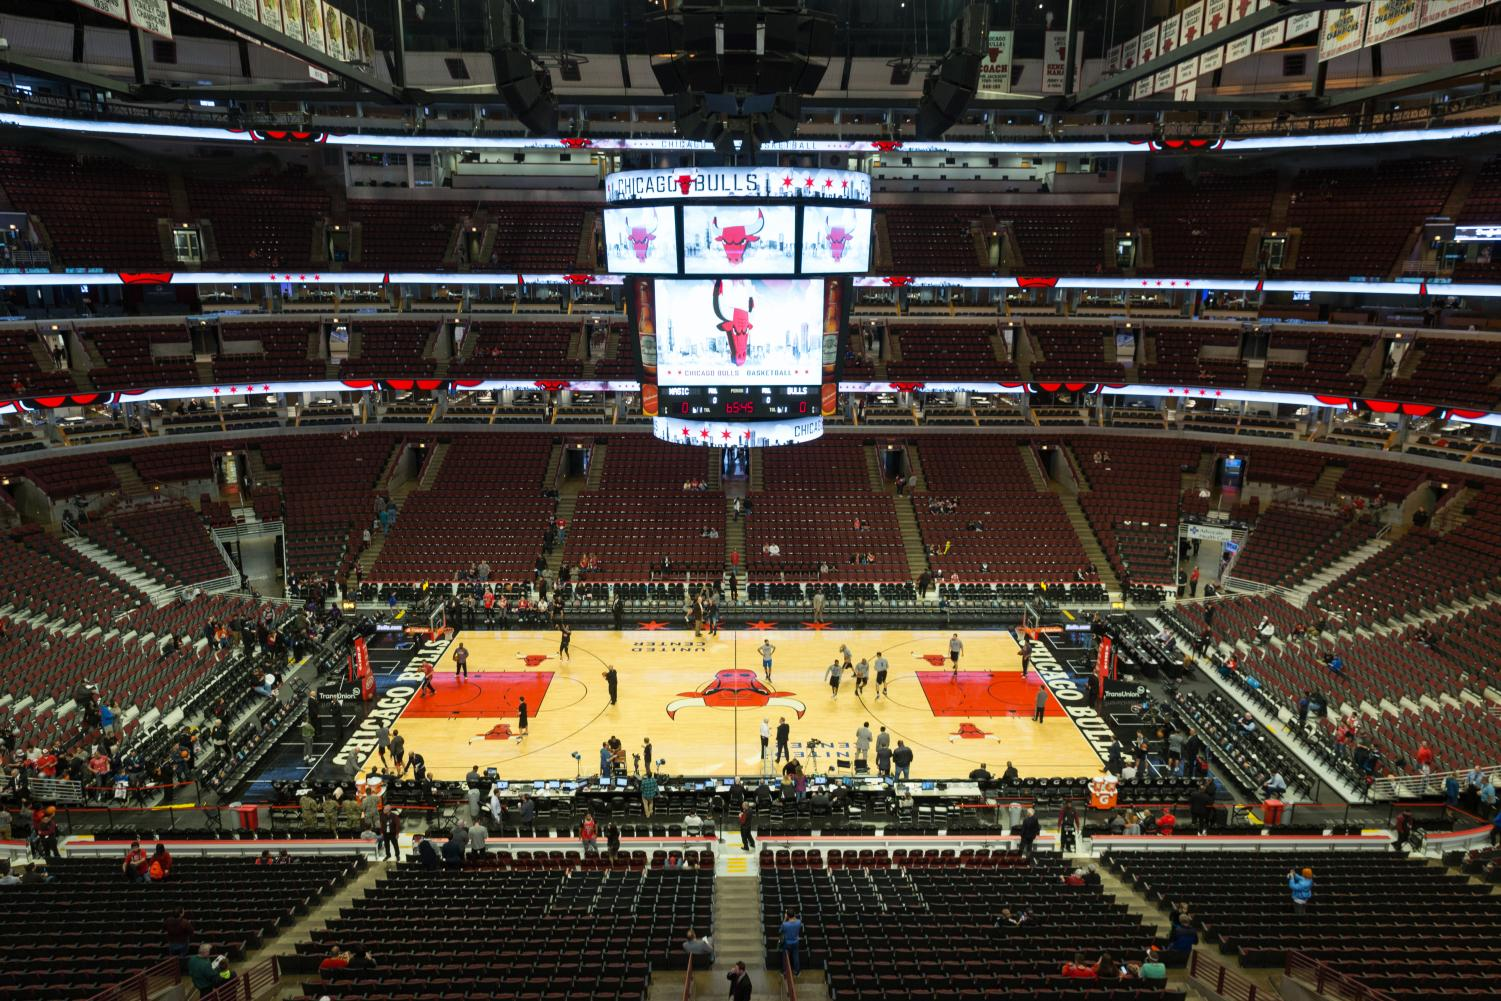 A picture of the Chicago Bulls stadium, taken on November 7, 2016. (Photo Credit: Mack Male via Wikimedia Commons under Creative Commons license)